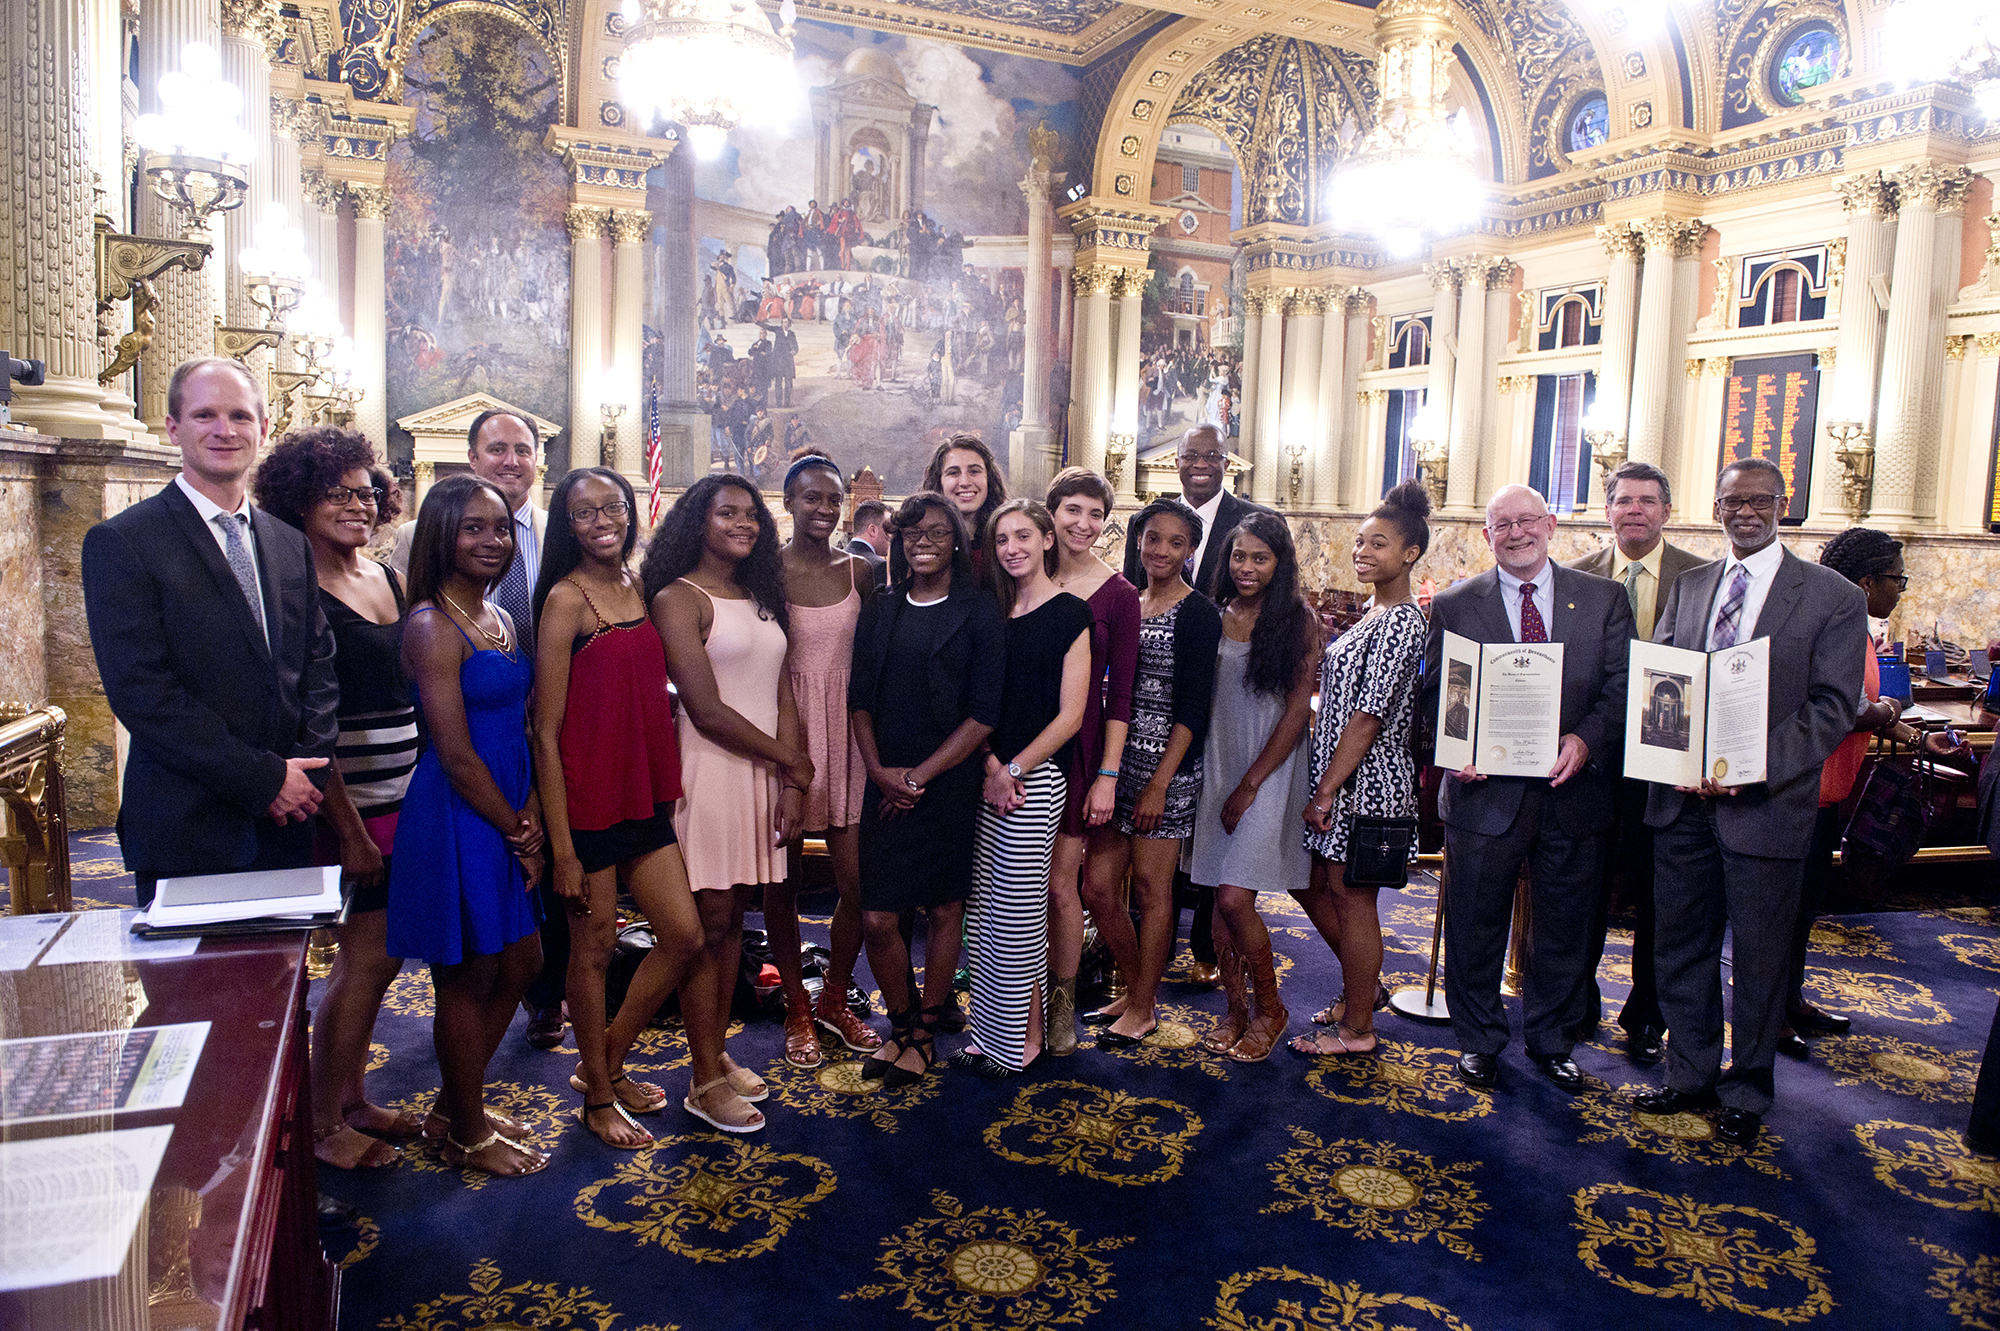 June 7, 2016: Senator Haywood joins Rep. McCarter to present a Senate citation to the Cheltenham High School Girls Outdoor Track Team for winning the State Championship.